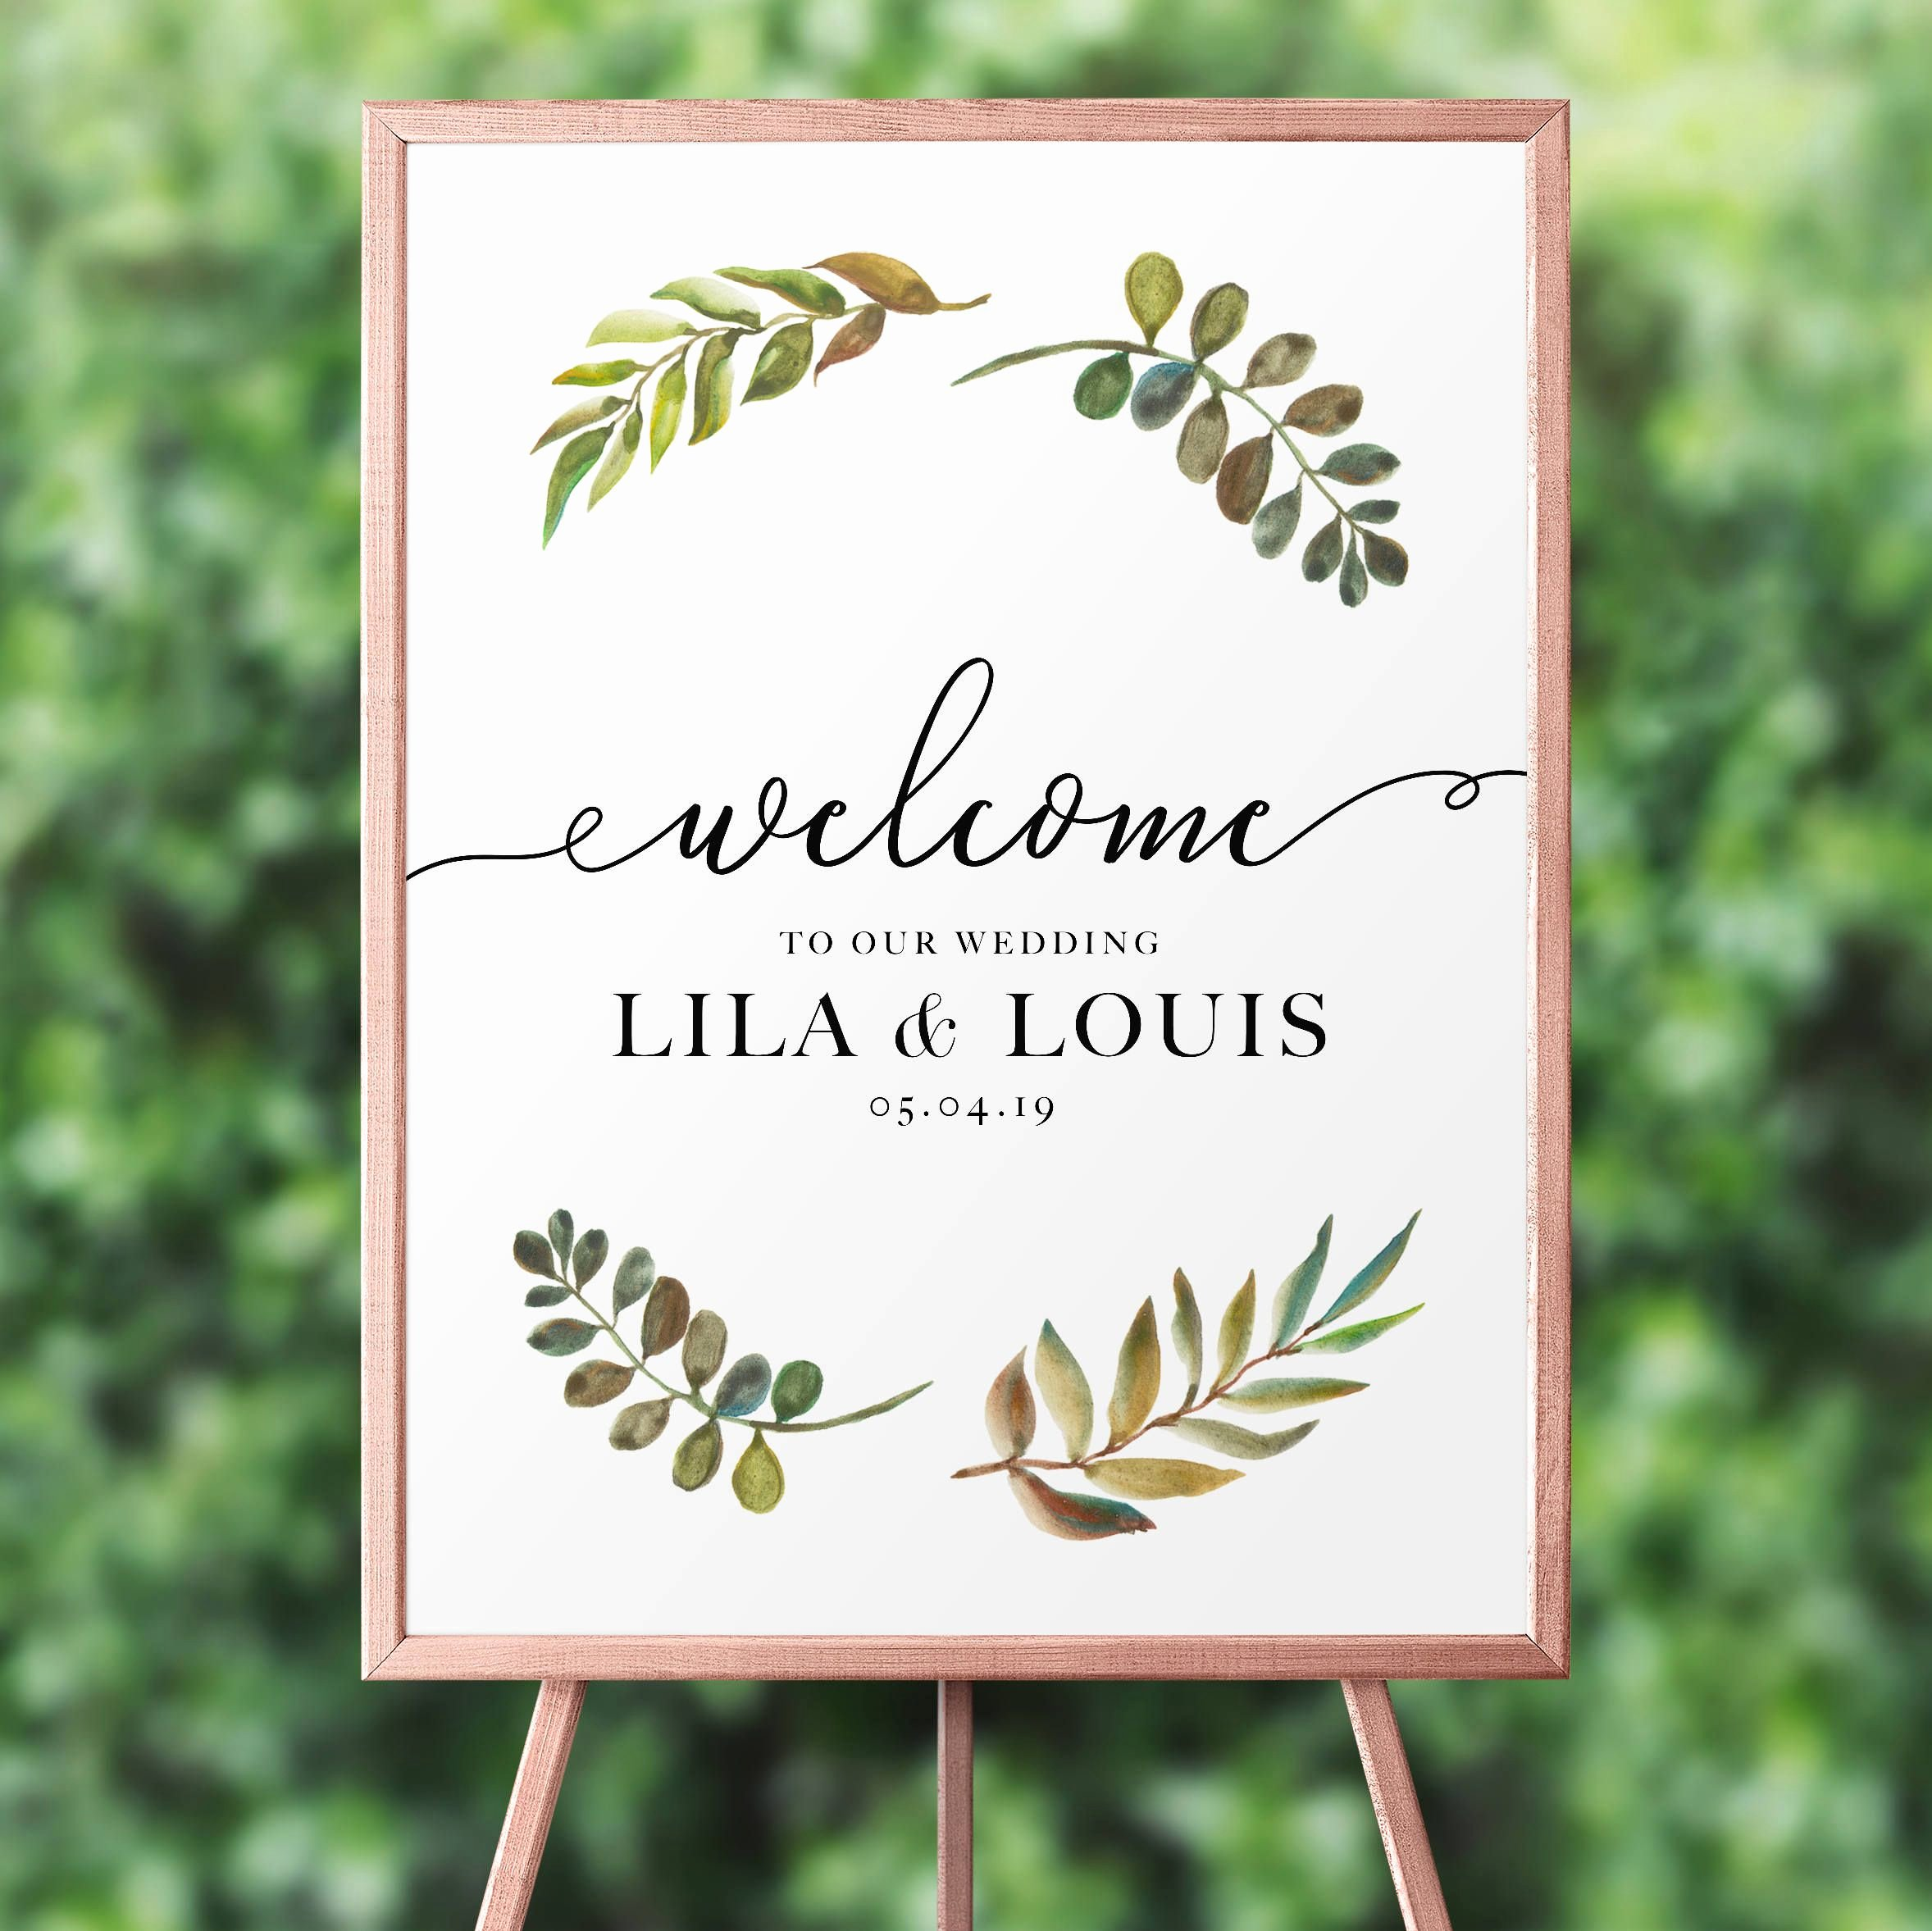 Wedding Welcome Sign Template Fresh Wel E Wedding Sign Template Greenery Wel E to Our